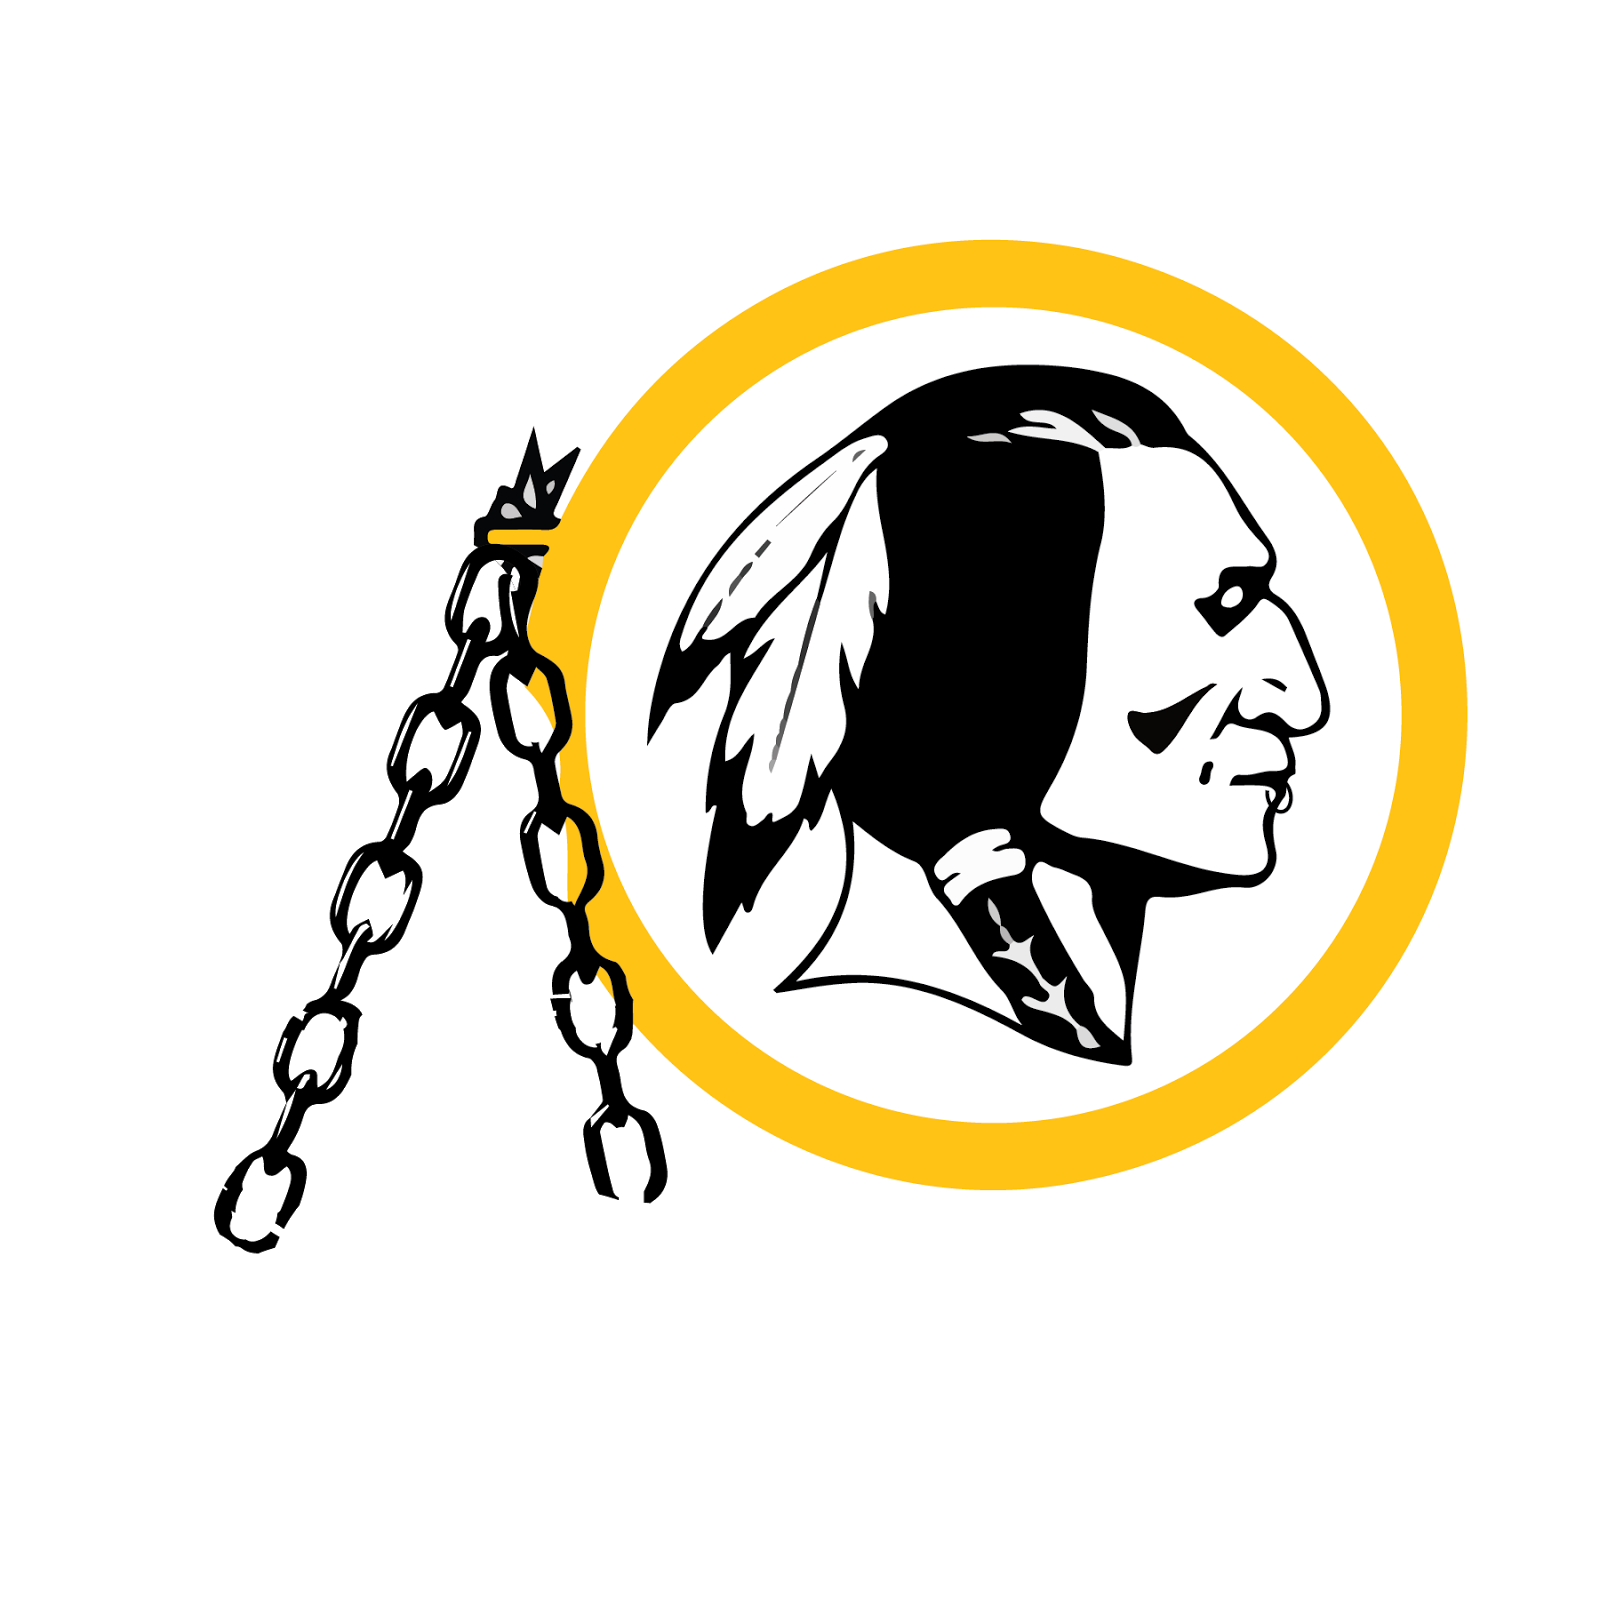 Washington Redskins, metal, logo, re-imagined